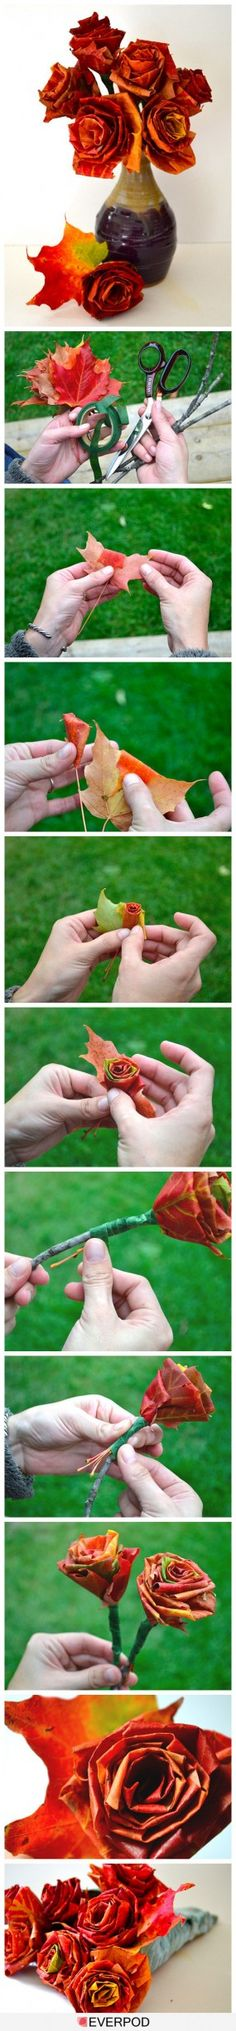 folded leaves - become roses  Inspiring images